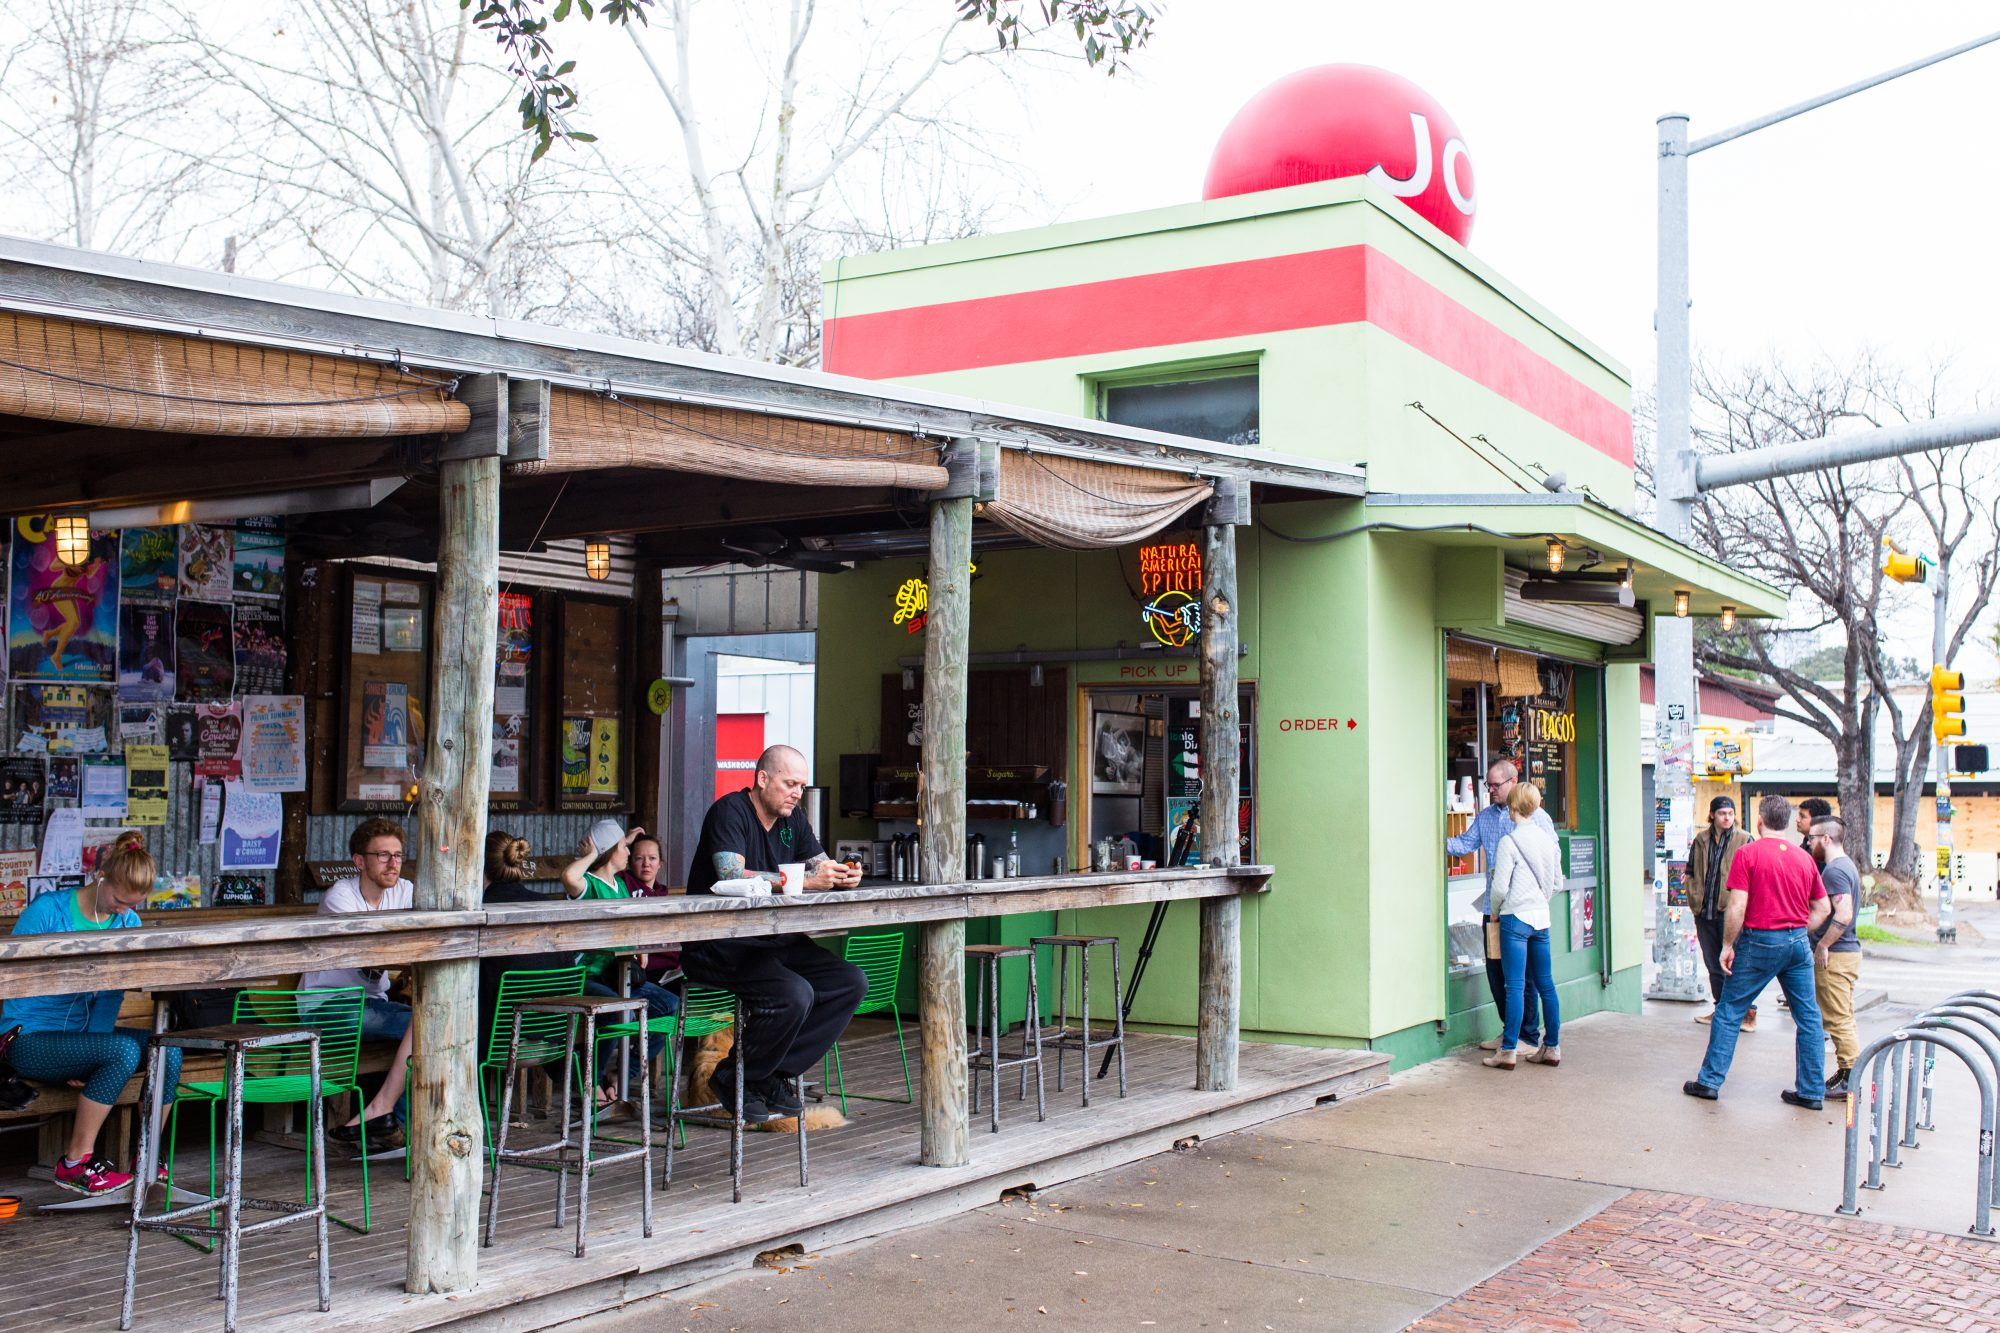 Front view of the outdoor eating area at Jo's Diner